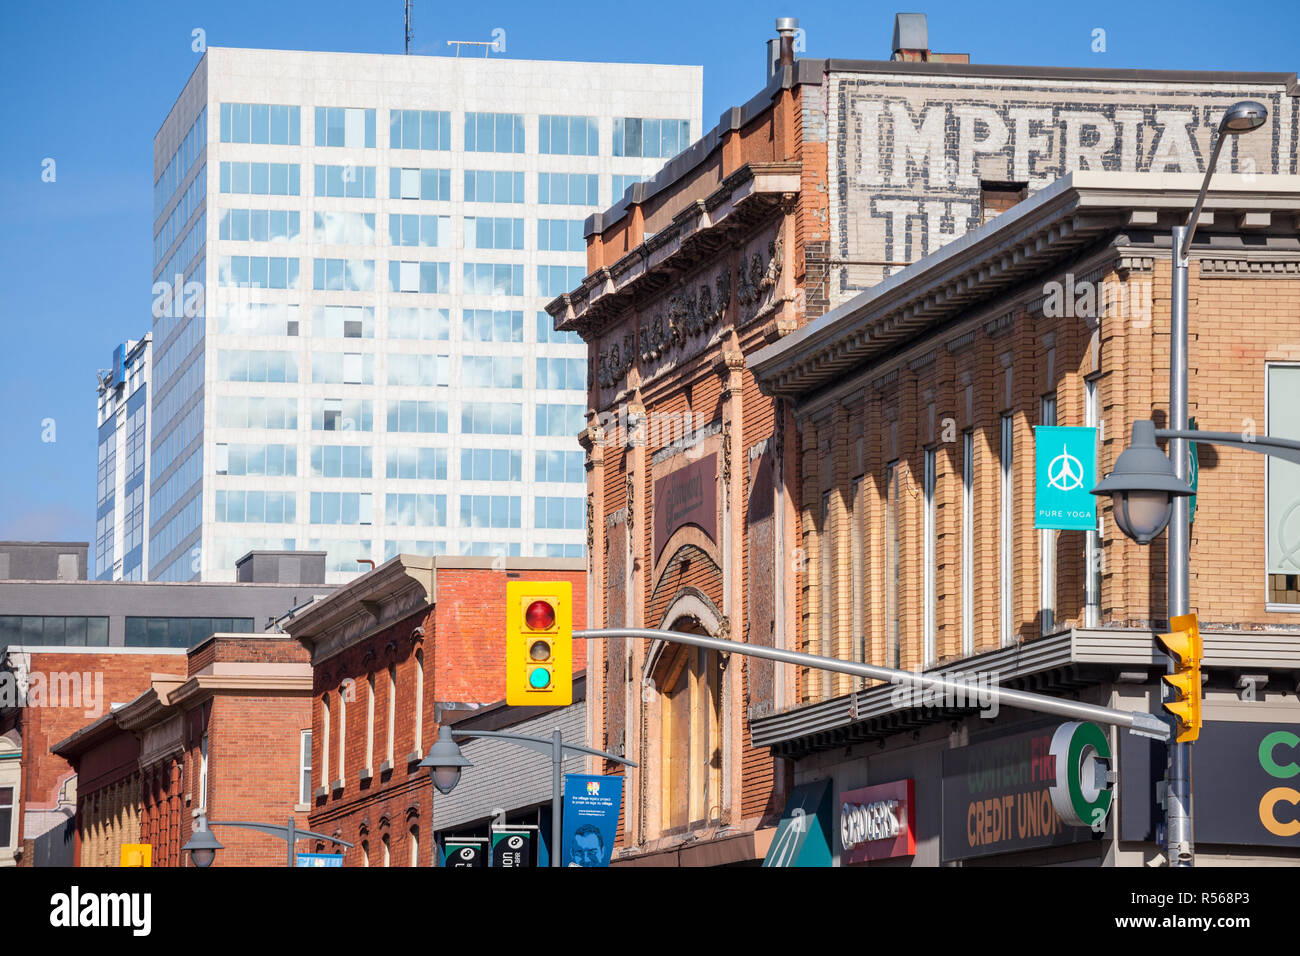 OTTAWA, CANADA - NOVEMBER 11, 2018: Old brick building facing a modern office tower on Bank Street, in Ottawa, Ontario,  on Bank Street, in Centretown - Stock Image